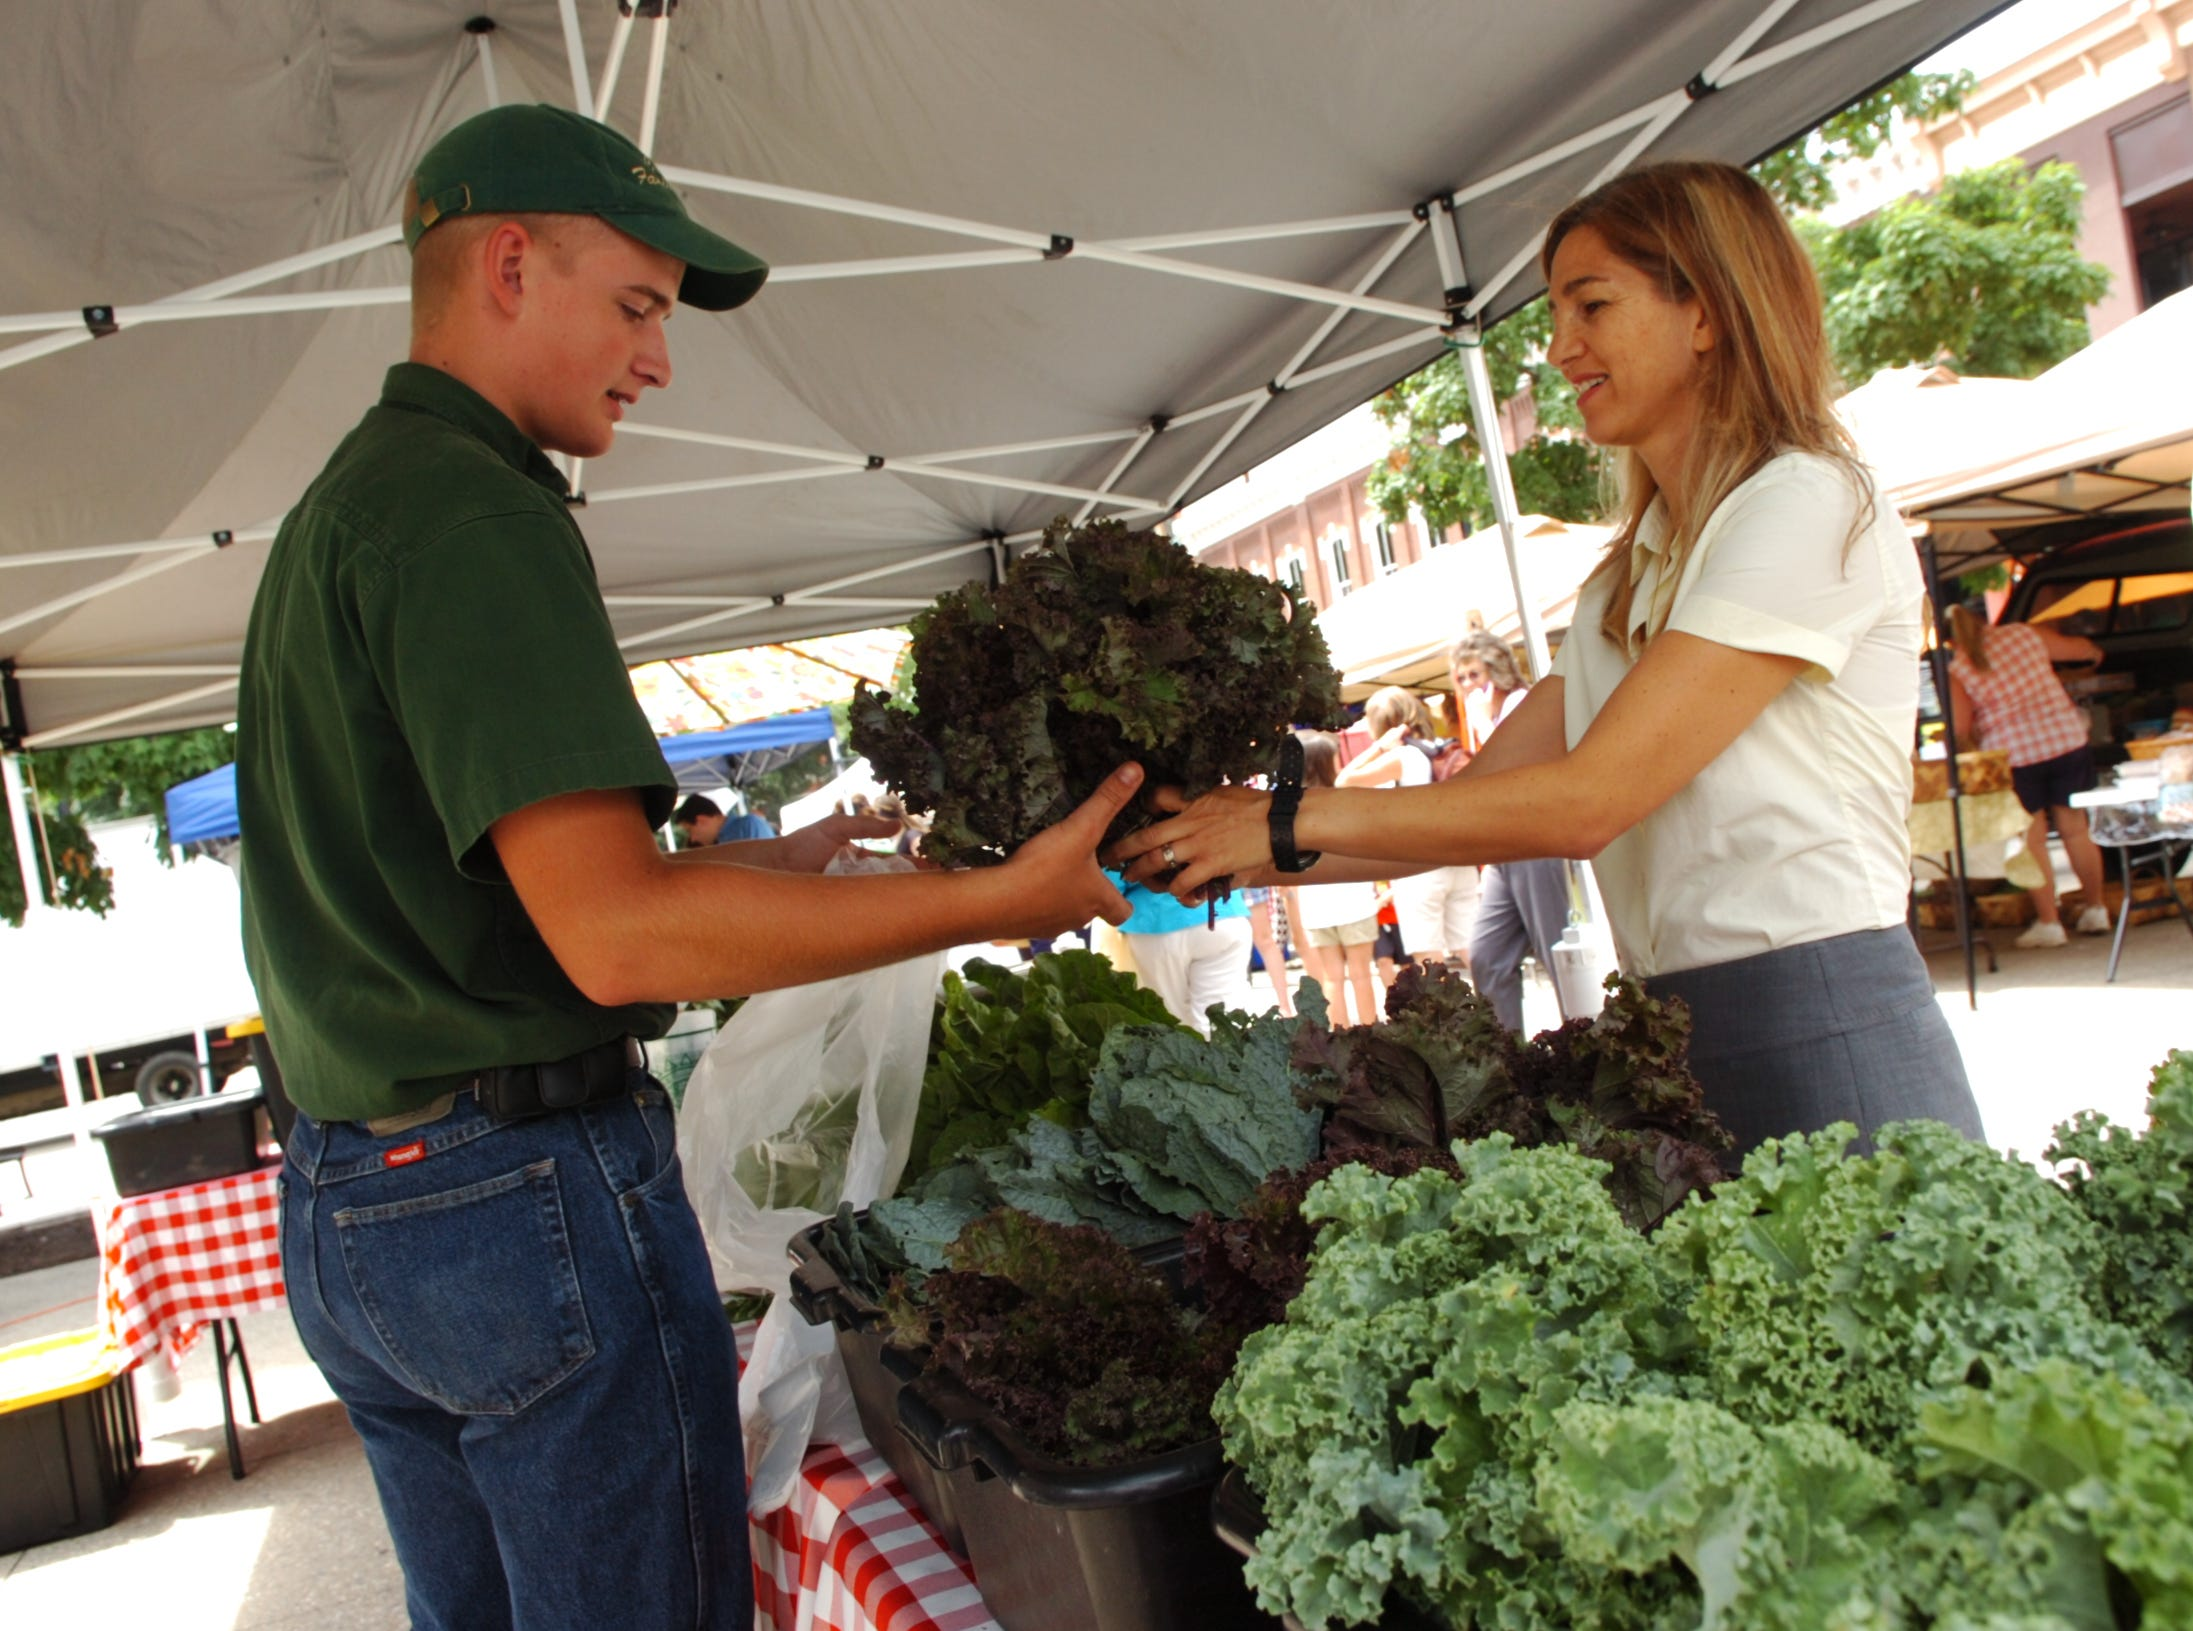 Mahasti Vafaie, owner of Tomato Head restaurants, purchases some produce from Caleb Colvin of Colvin Family Farm at the Farmers Market in Market Square on Wednesday, June 30, 2010. Vafaie opened Tomato Head 20 years ago as a lunch spot. While others have come and gone, the 46-year-old who emigrated to TN when she was 14 has over the years gradually built the Market Square restaurant into one of Knoxville's favorites serving unique, made-from scratch, locally grown food.